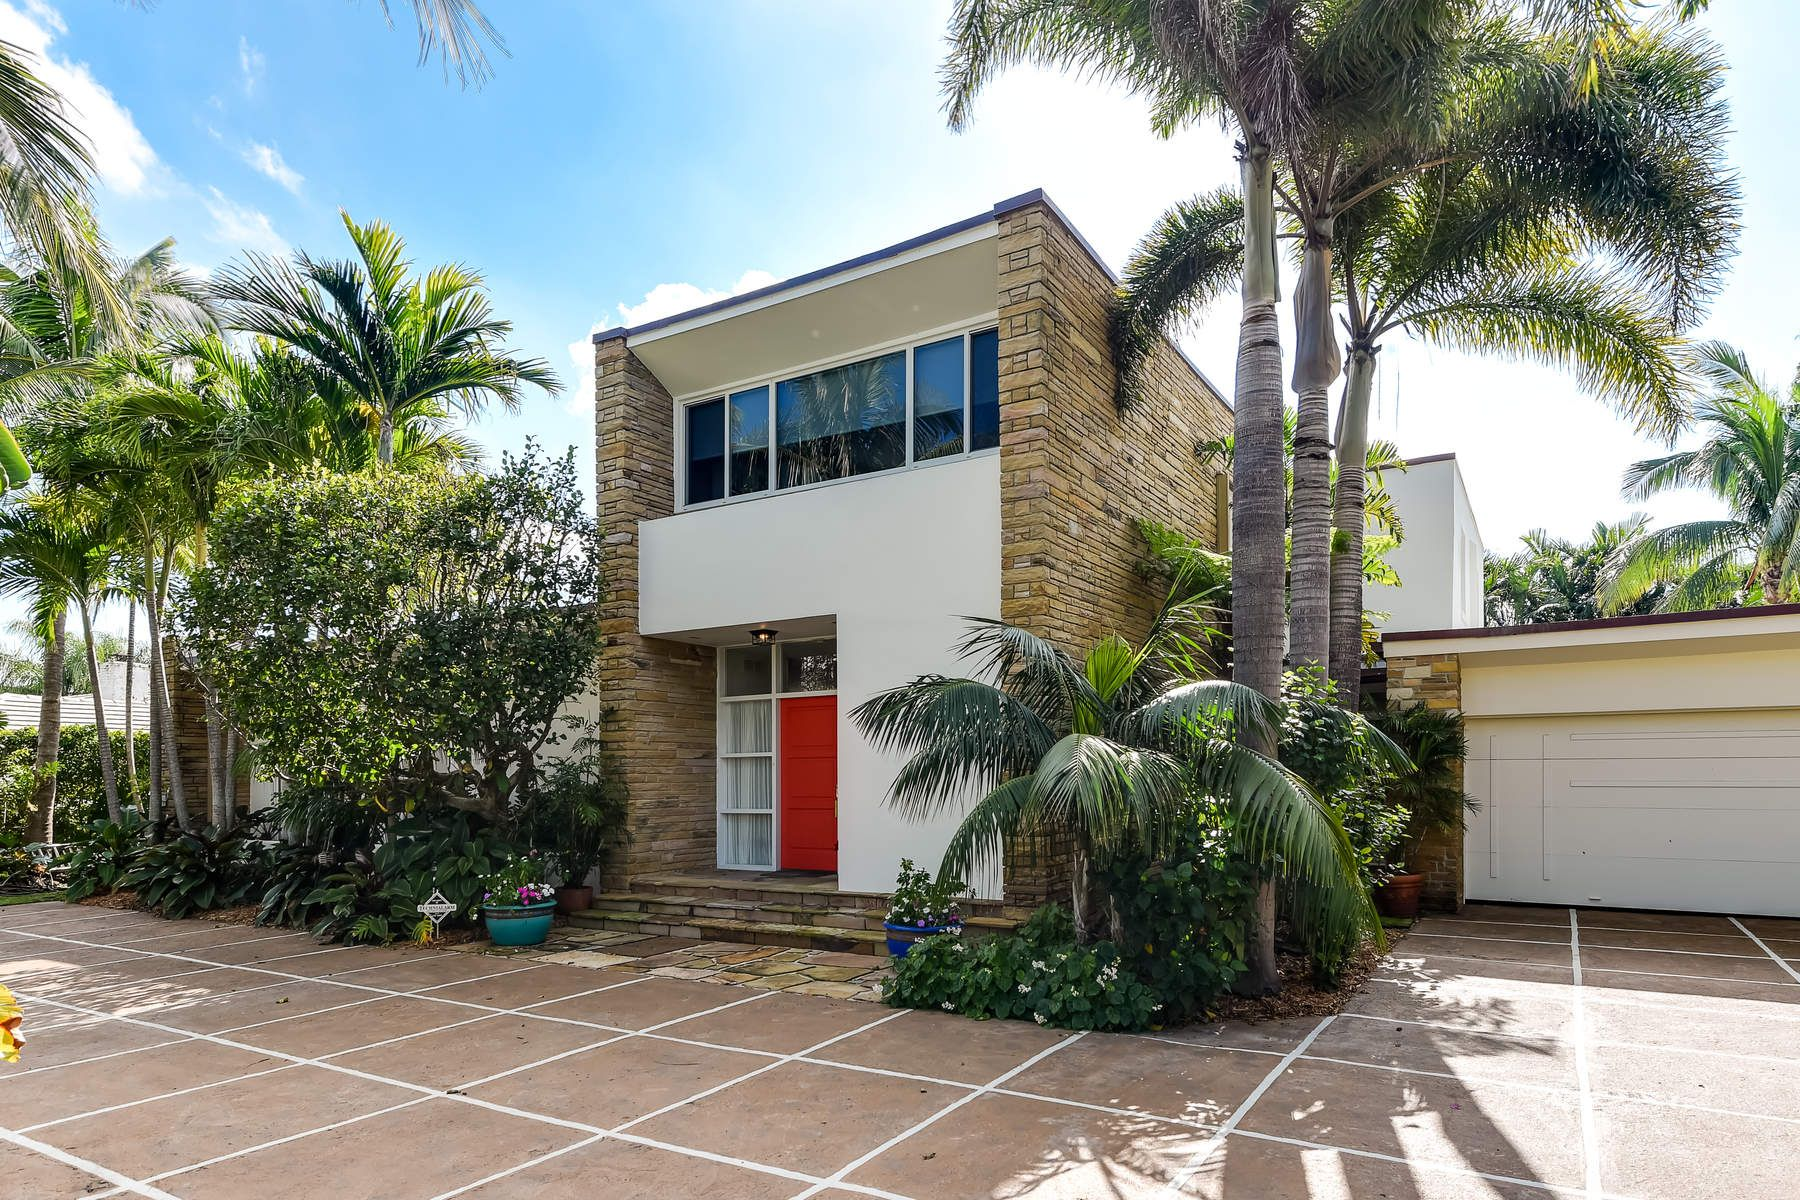 Single Family Home for Sale at Unique Prairie Style House 244 Nightingale Trl, North End, Palm Beach, Florida, 33480 United States